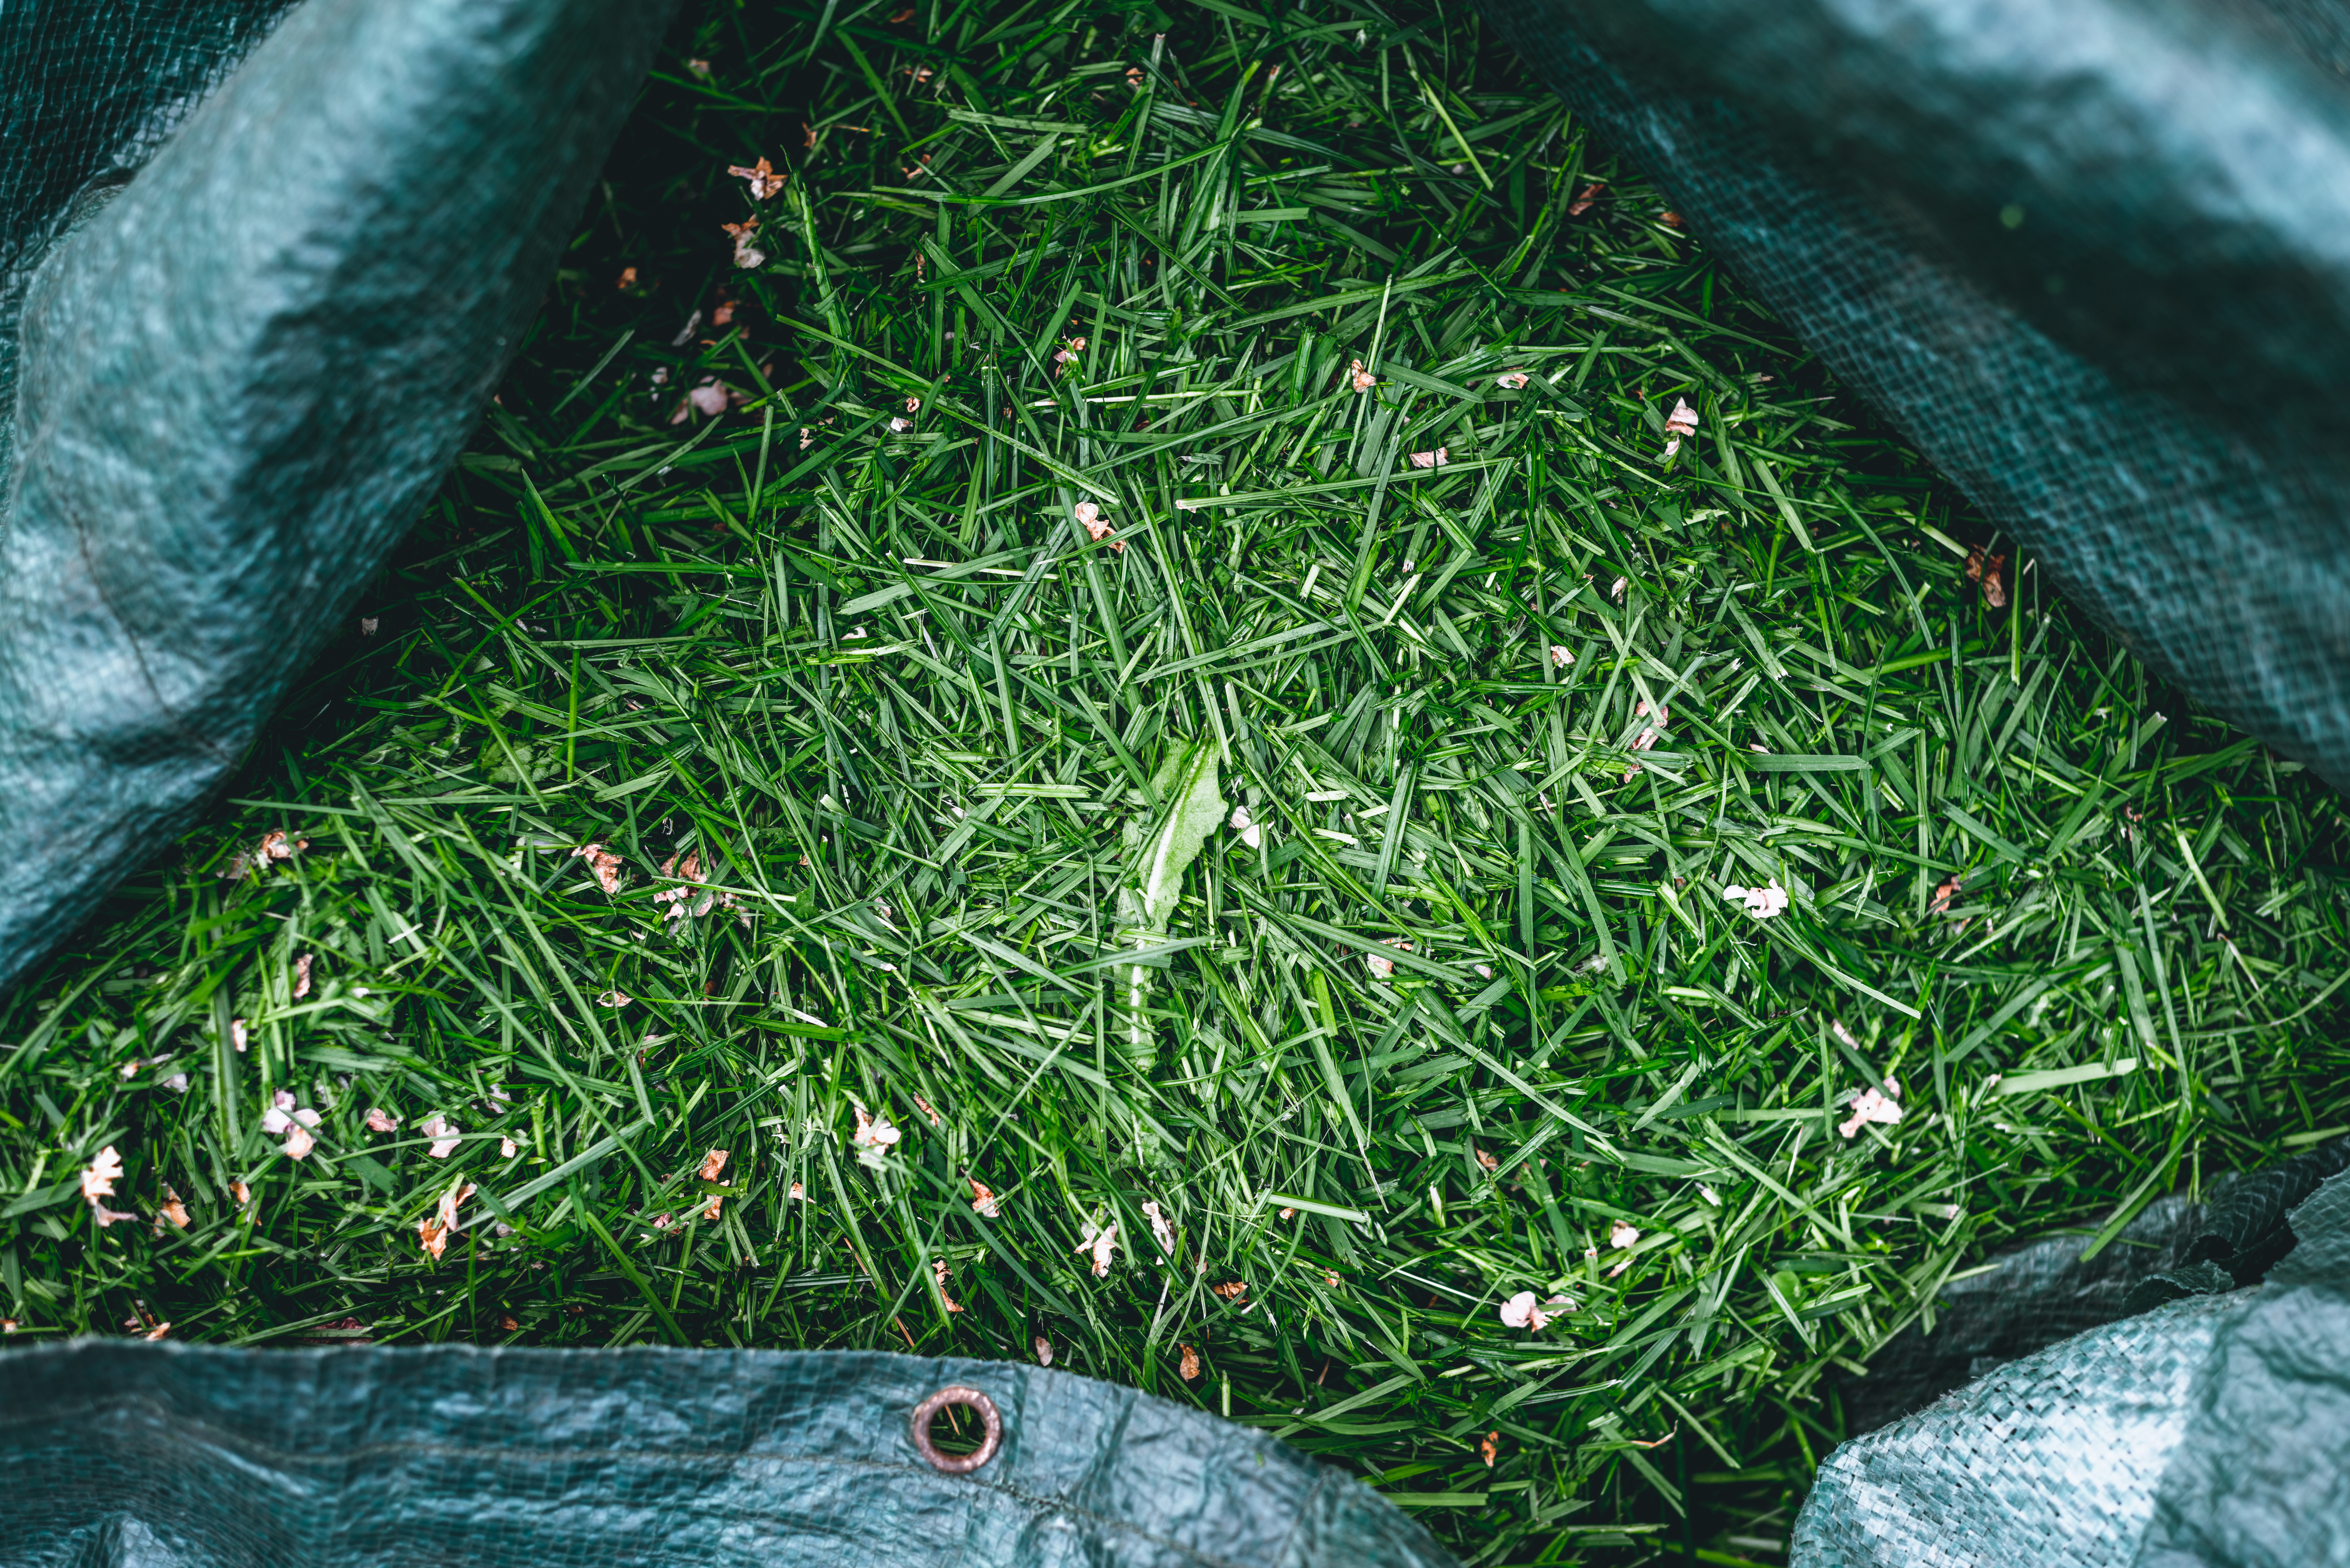 Mulching The Lawn Vs Bagging The Grass Home Guides Sf Gate